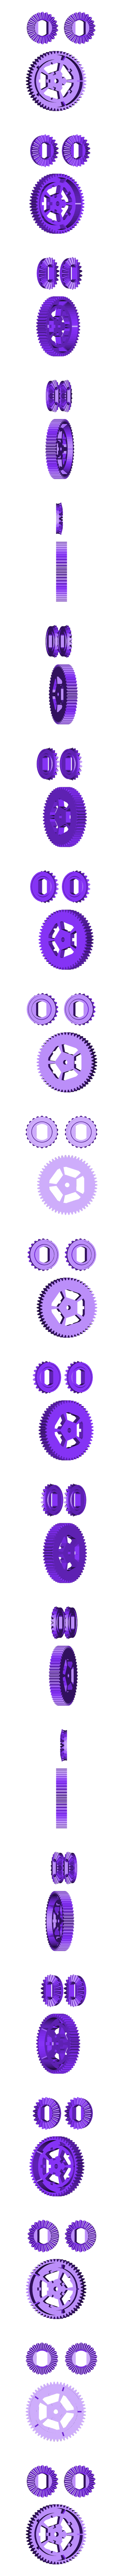 Gears-update.stl Download free STL file Lynx - Fully 3D-printable 1/10 4wd buggy • Object to 3D print, tahustvedt